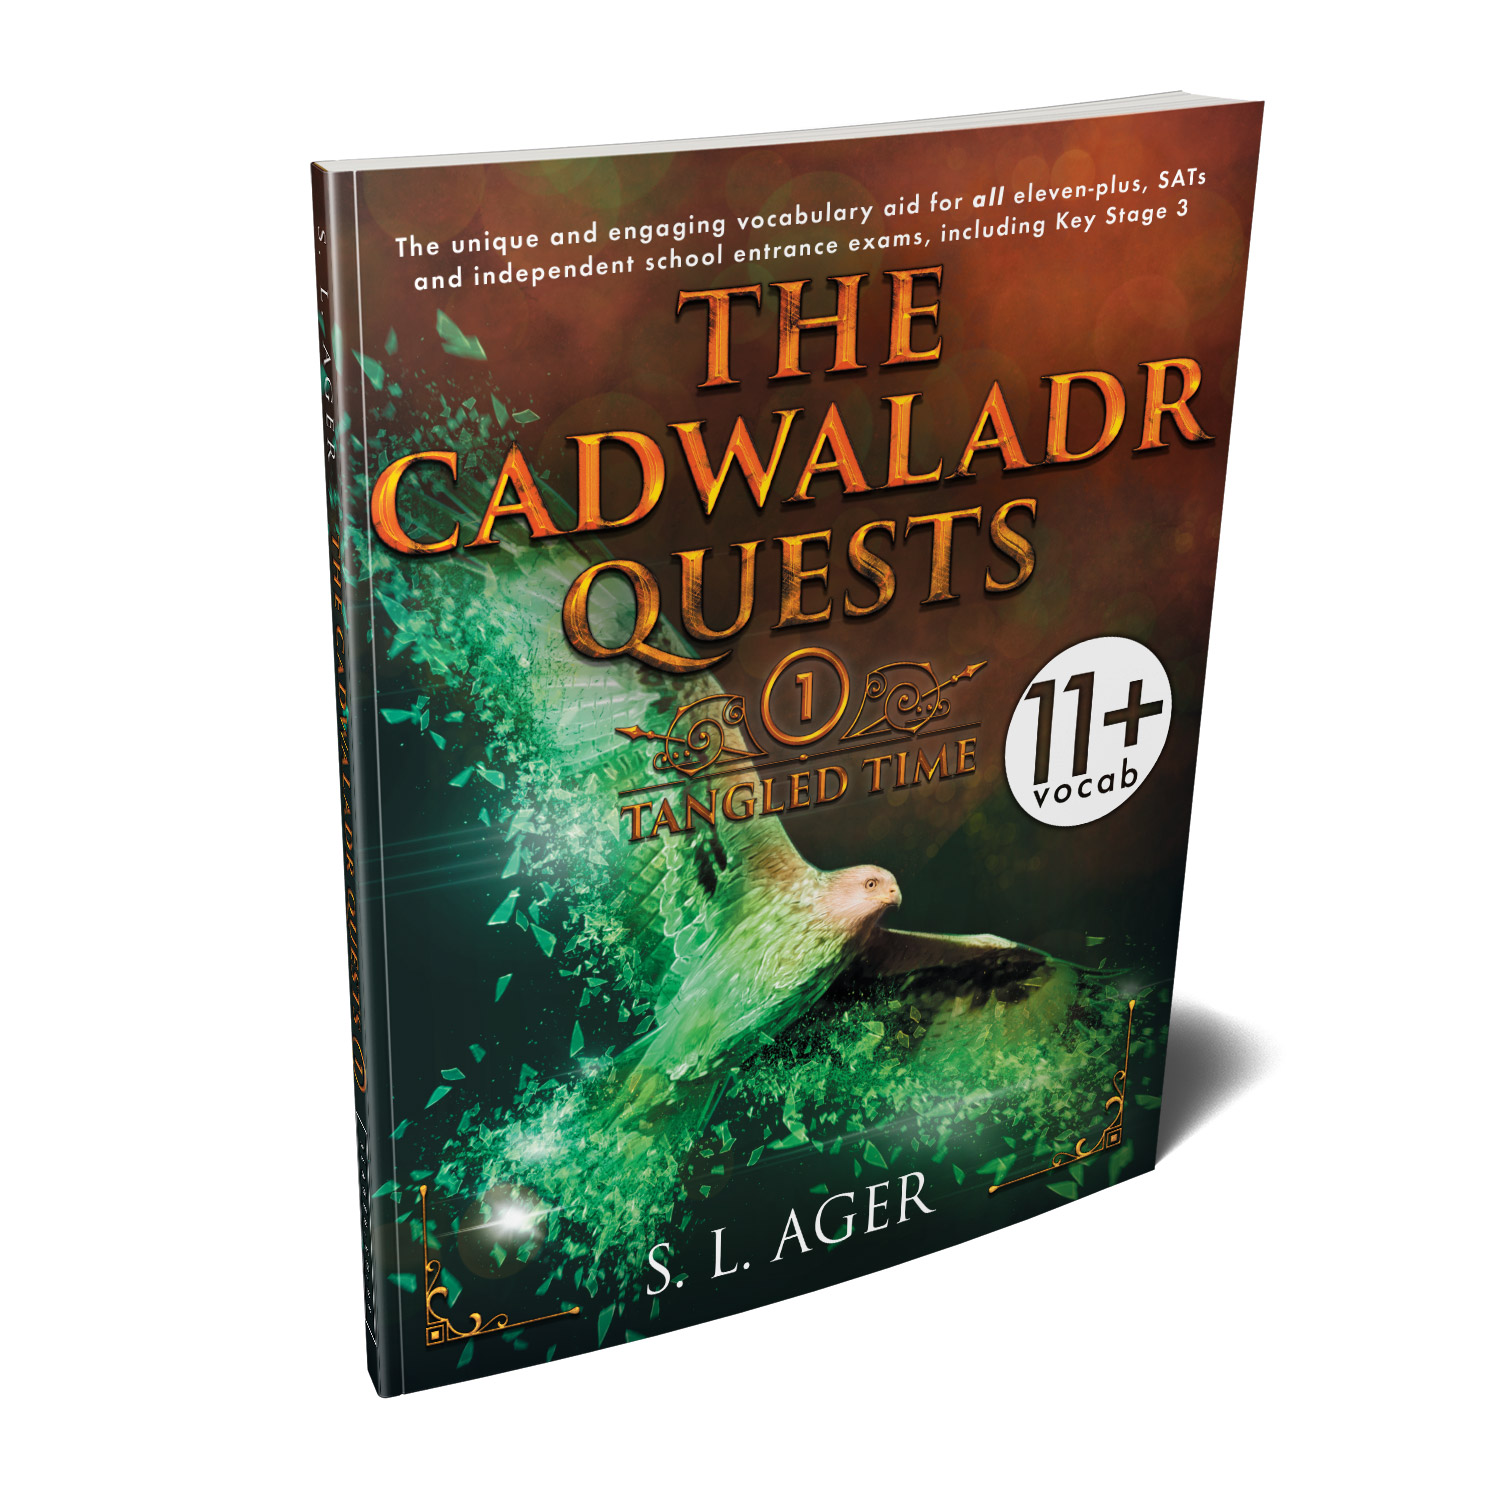 'The Cadwaladr Quests' is unique, story-based, educational tool that teaches young readers nearly 3000 exam-level English words. The author is S L Ager. The book cover and interior design are by Mark Thomas. To learn more about what Mark could do for your book, please visit coverness.com.